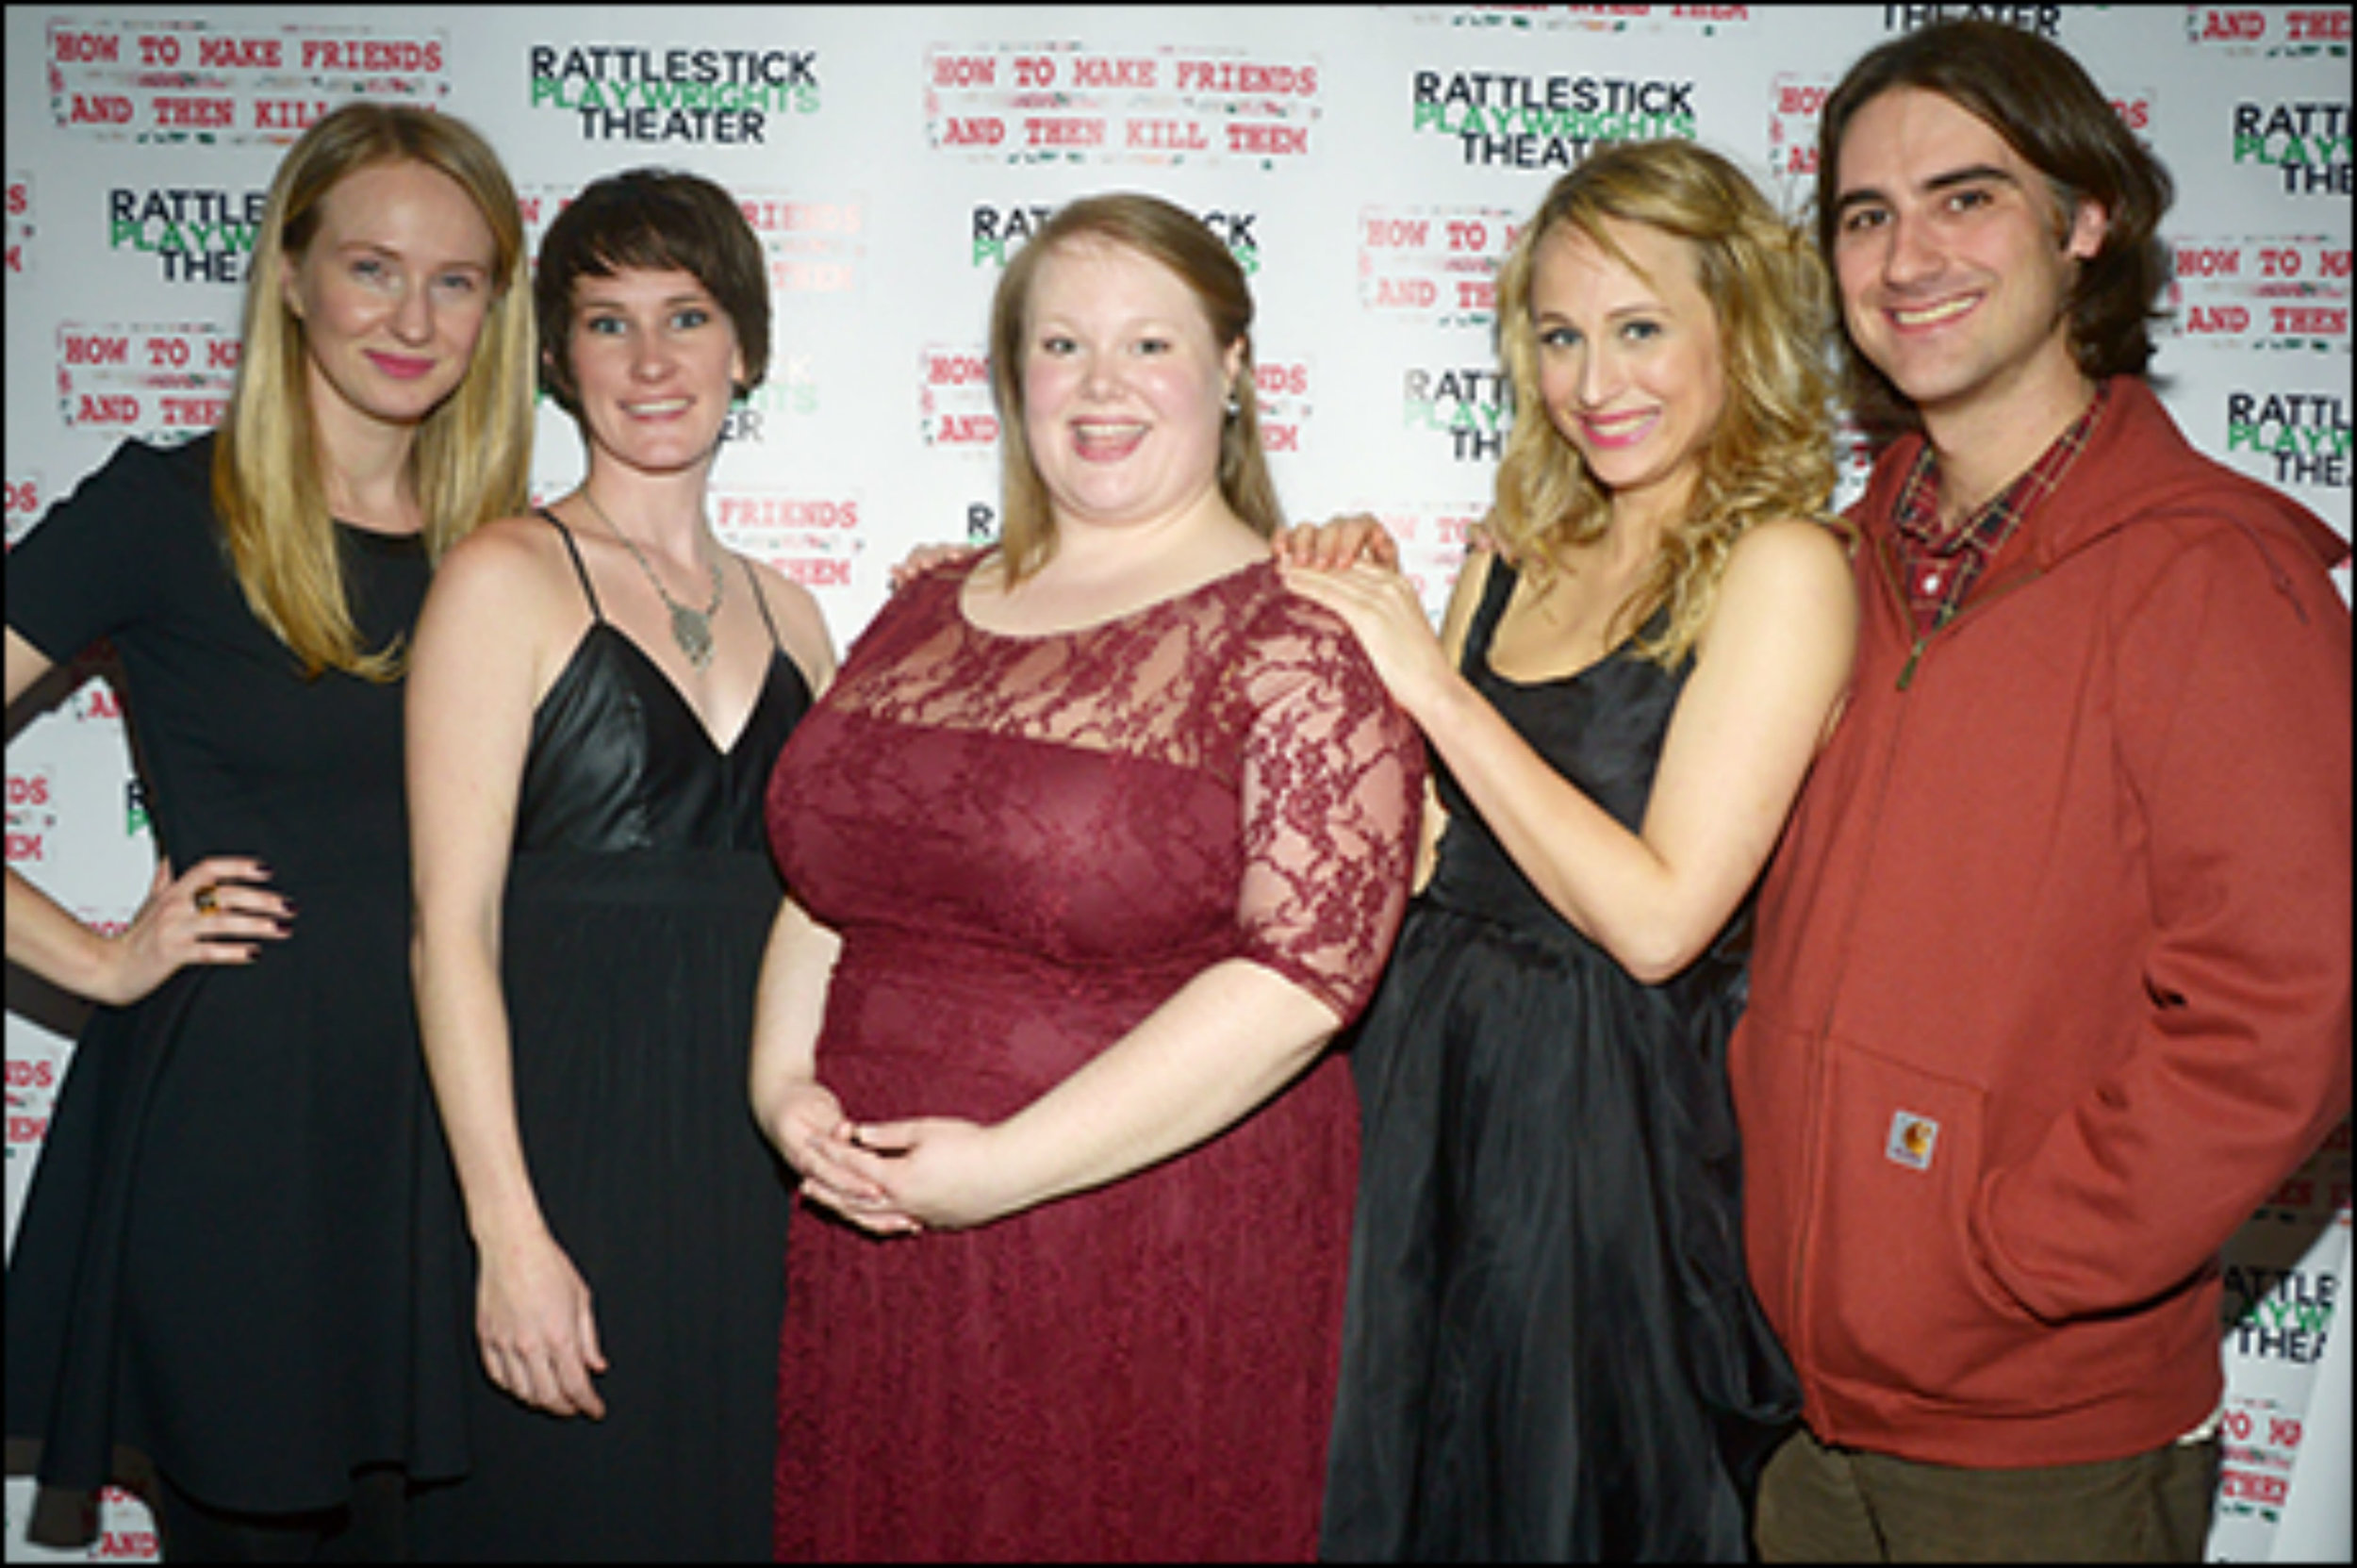 "The cast and creative team of ""How to Make Friends and then Kill Them"" at Rattlestick Playwrights Theater."